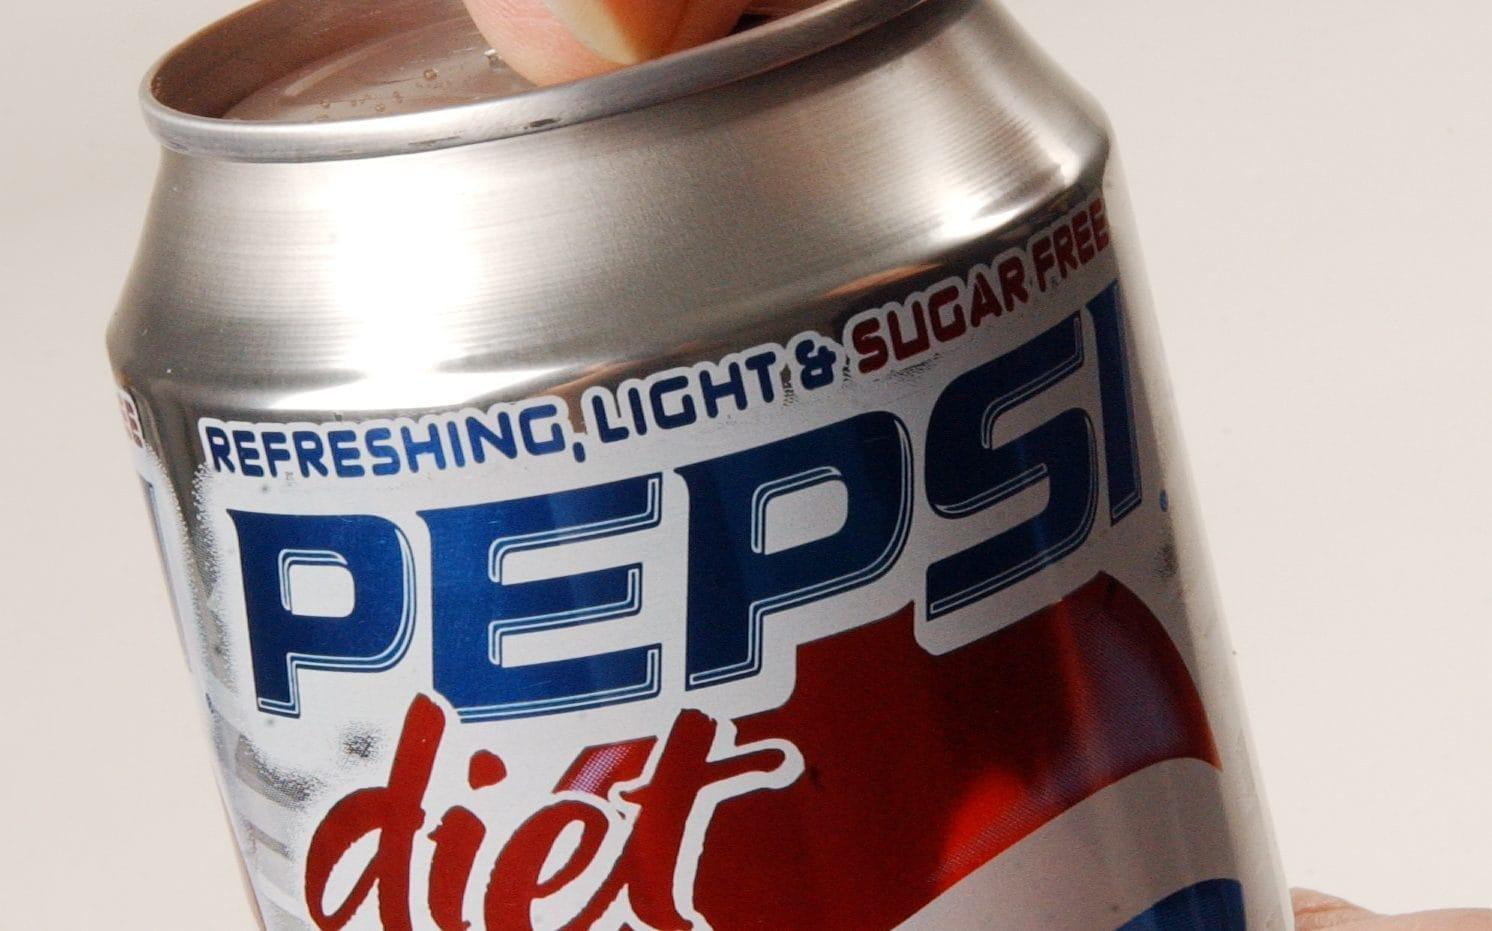 Two Diet Drinks A Day Could Double The Risk Of Diabetes, Study Finds